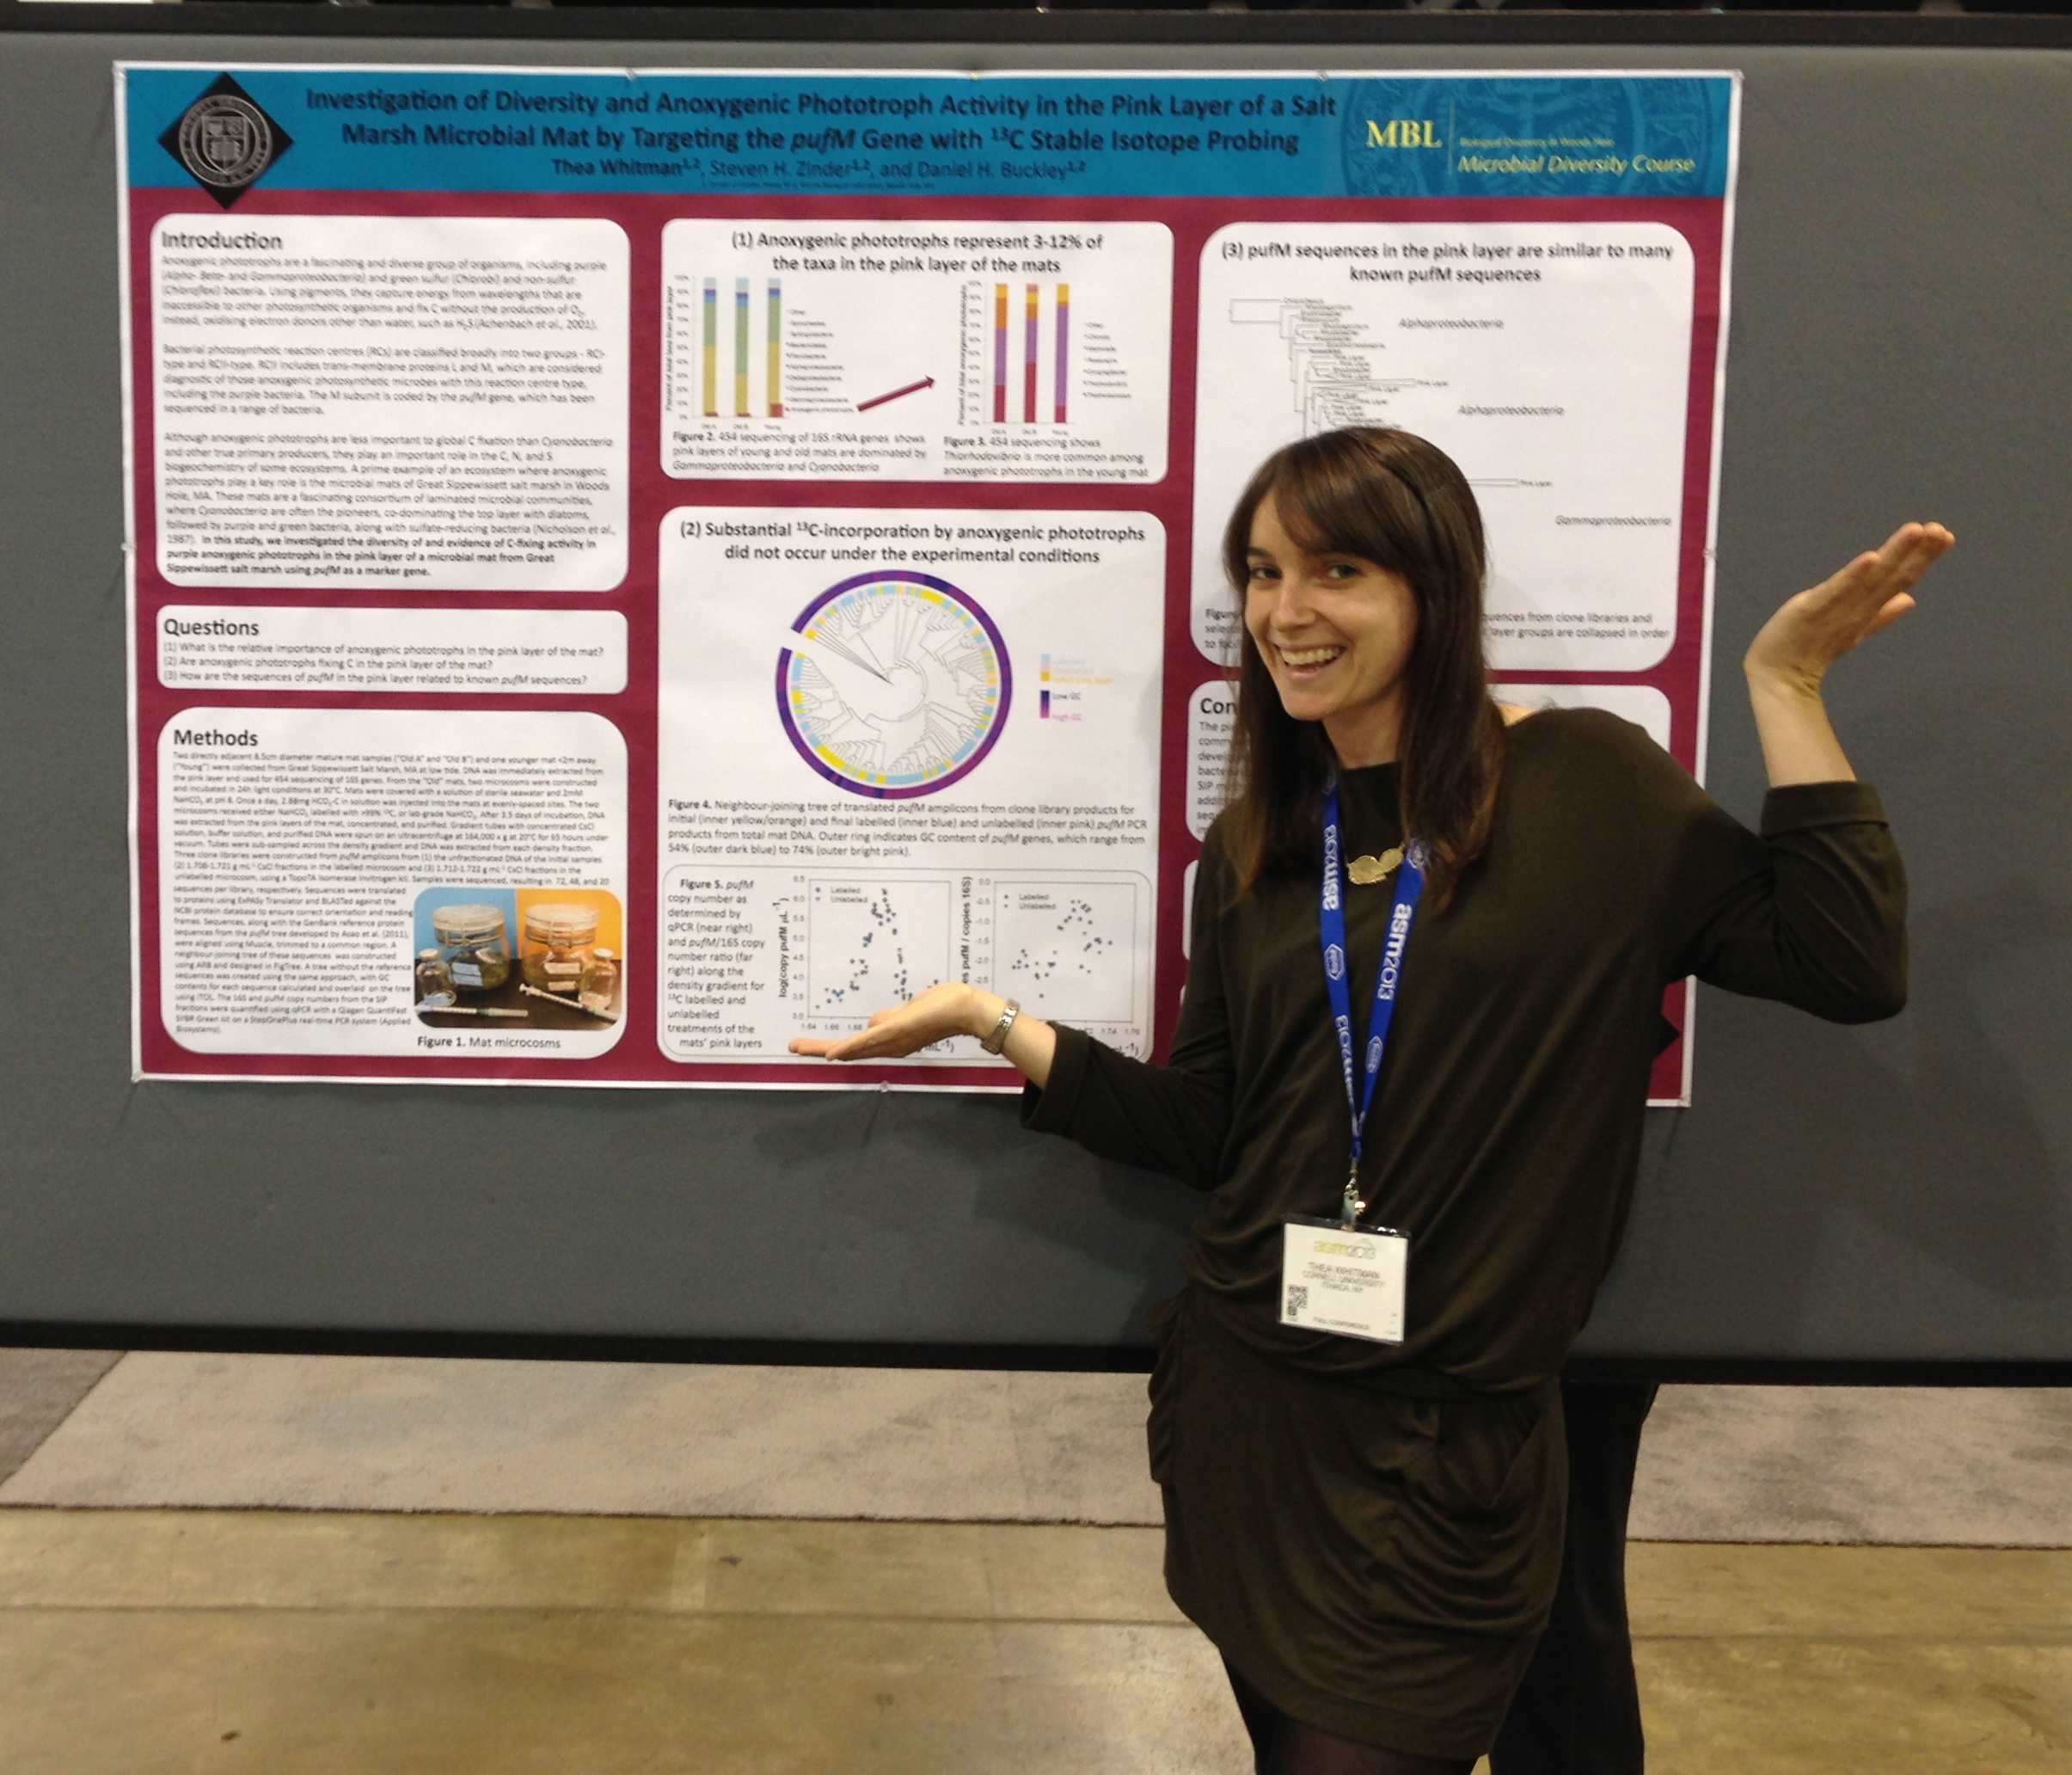 Presenting my MBL Microbial Diversity course research at ASM